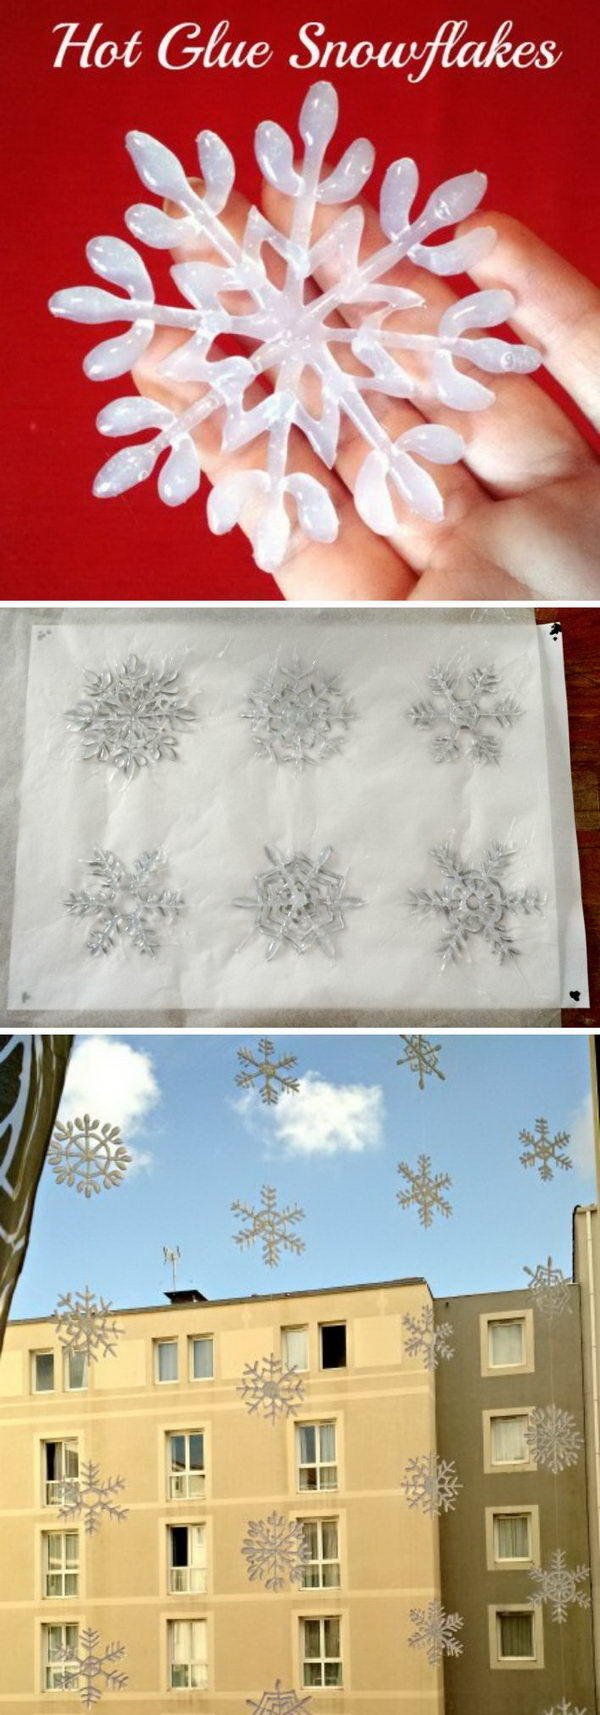 DIY Hot Glue Snowflakes. These snowflakes are super easy to make with glue guns.